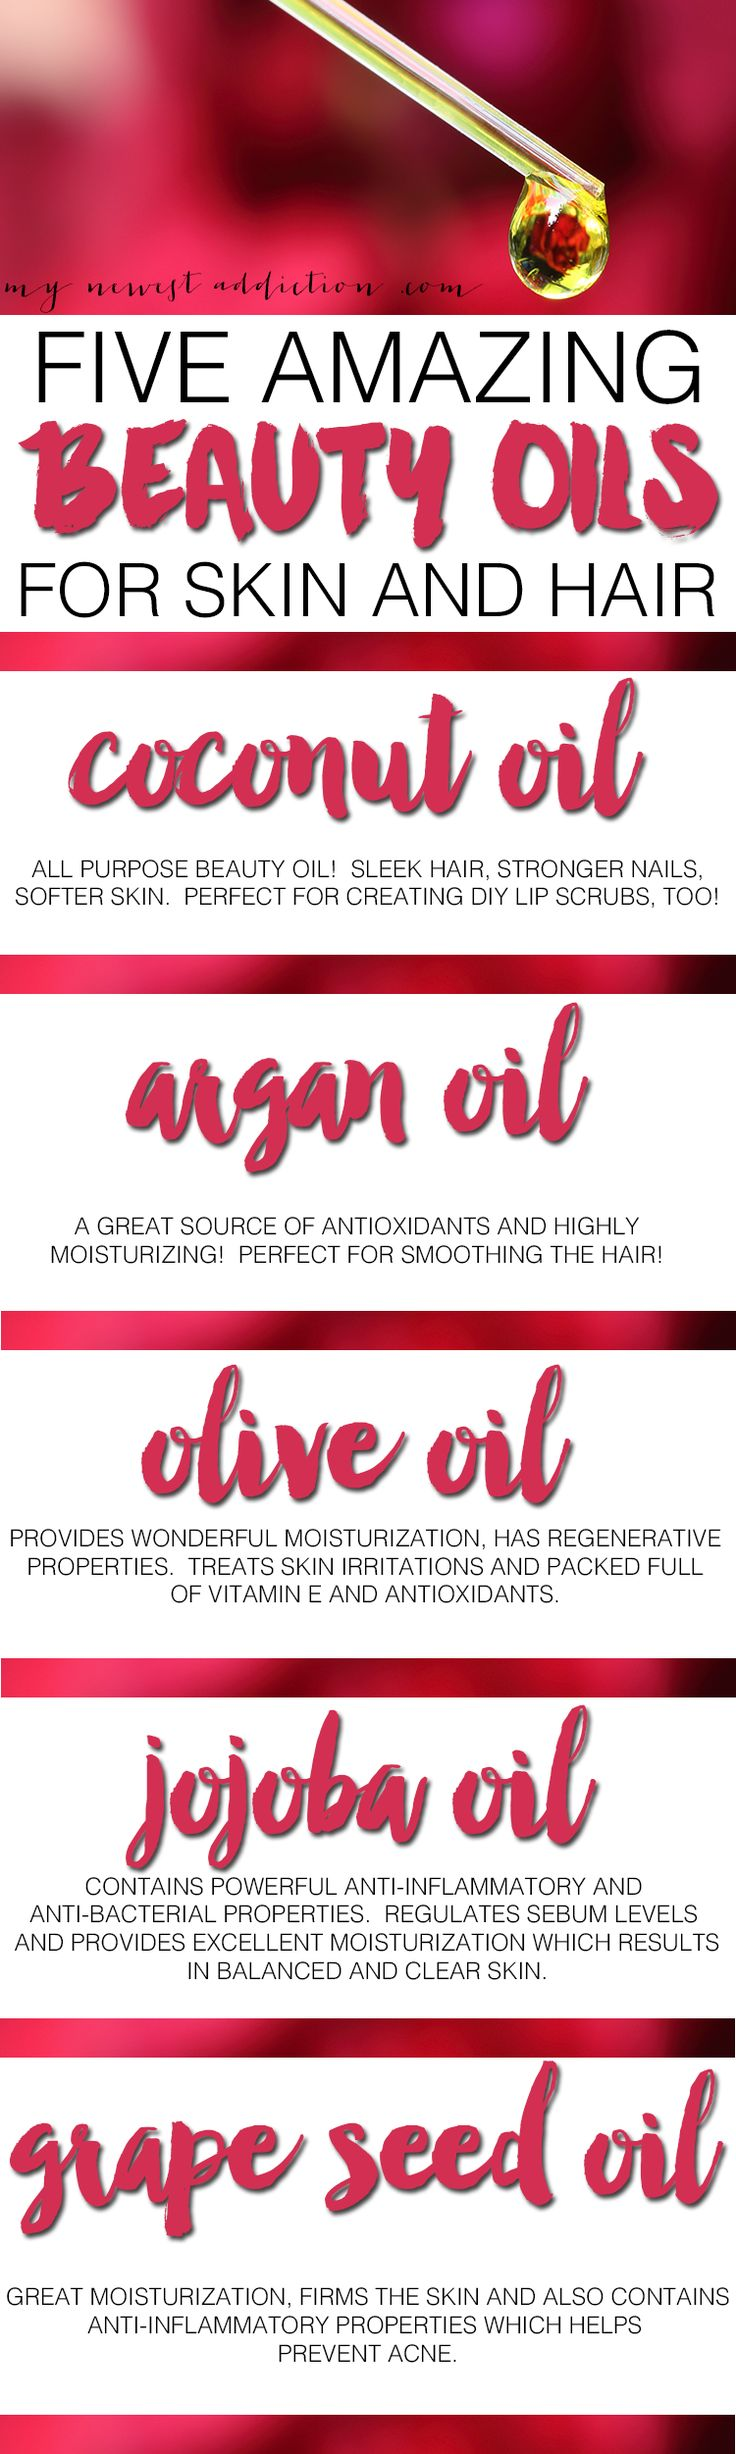 5 amazing beauty oils for skin and hair by My News Addiction